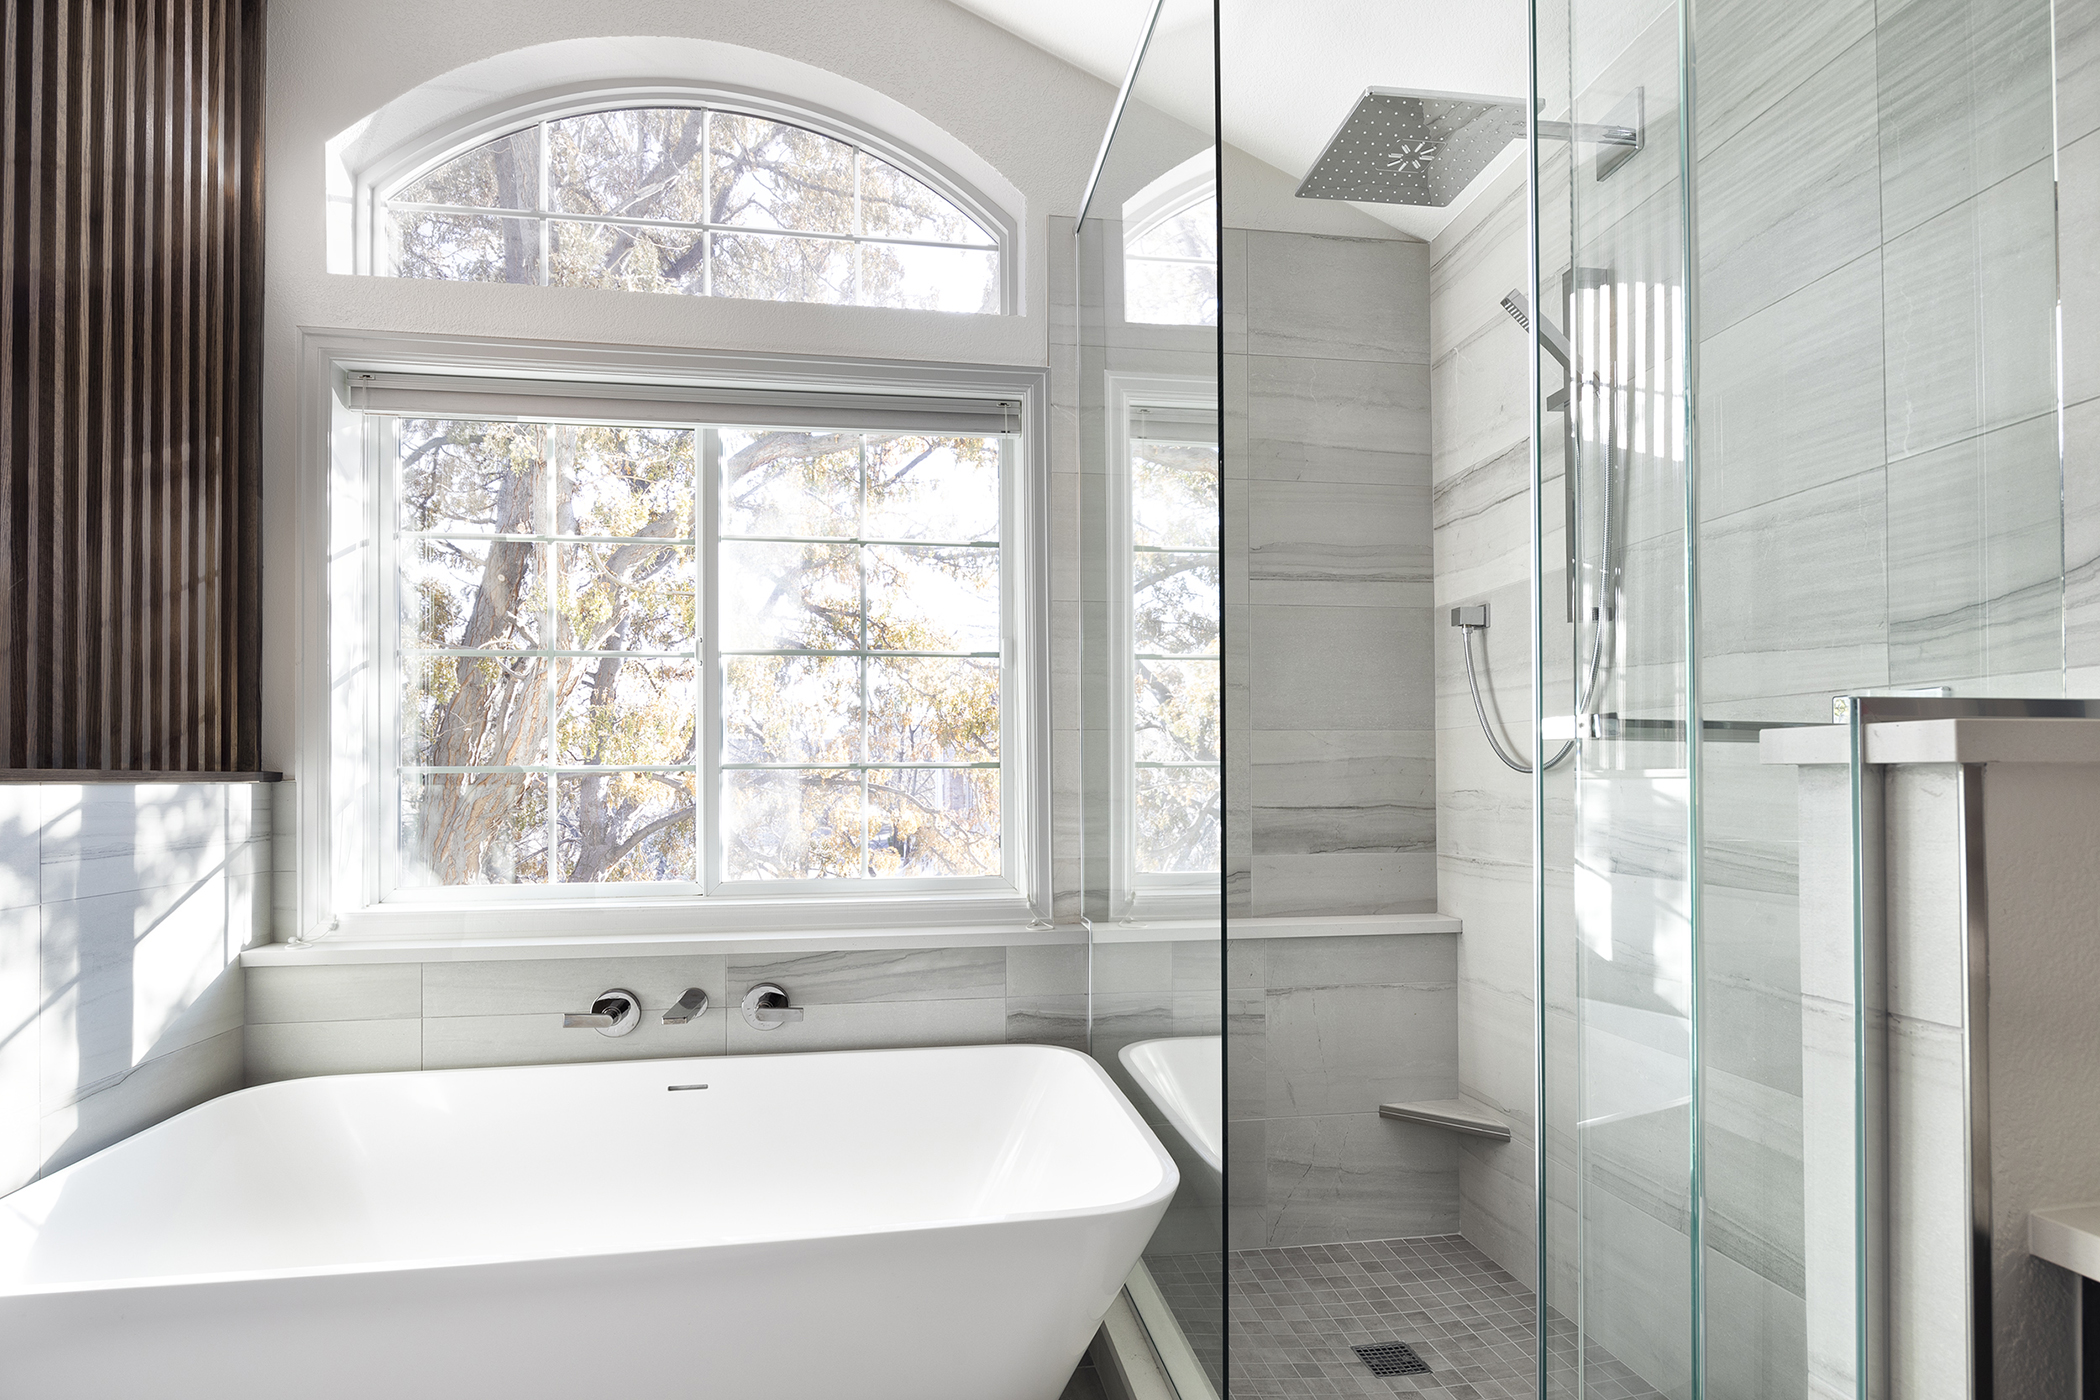 Melton Design Build Boulder Colorado Home Remodeler Master Bathroom Remodel Renovation Serene Modern Eastern